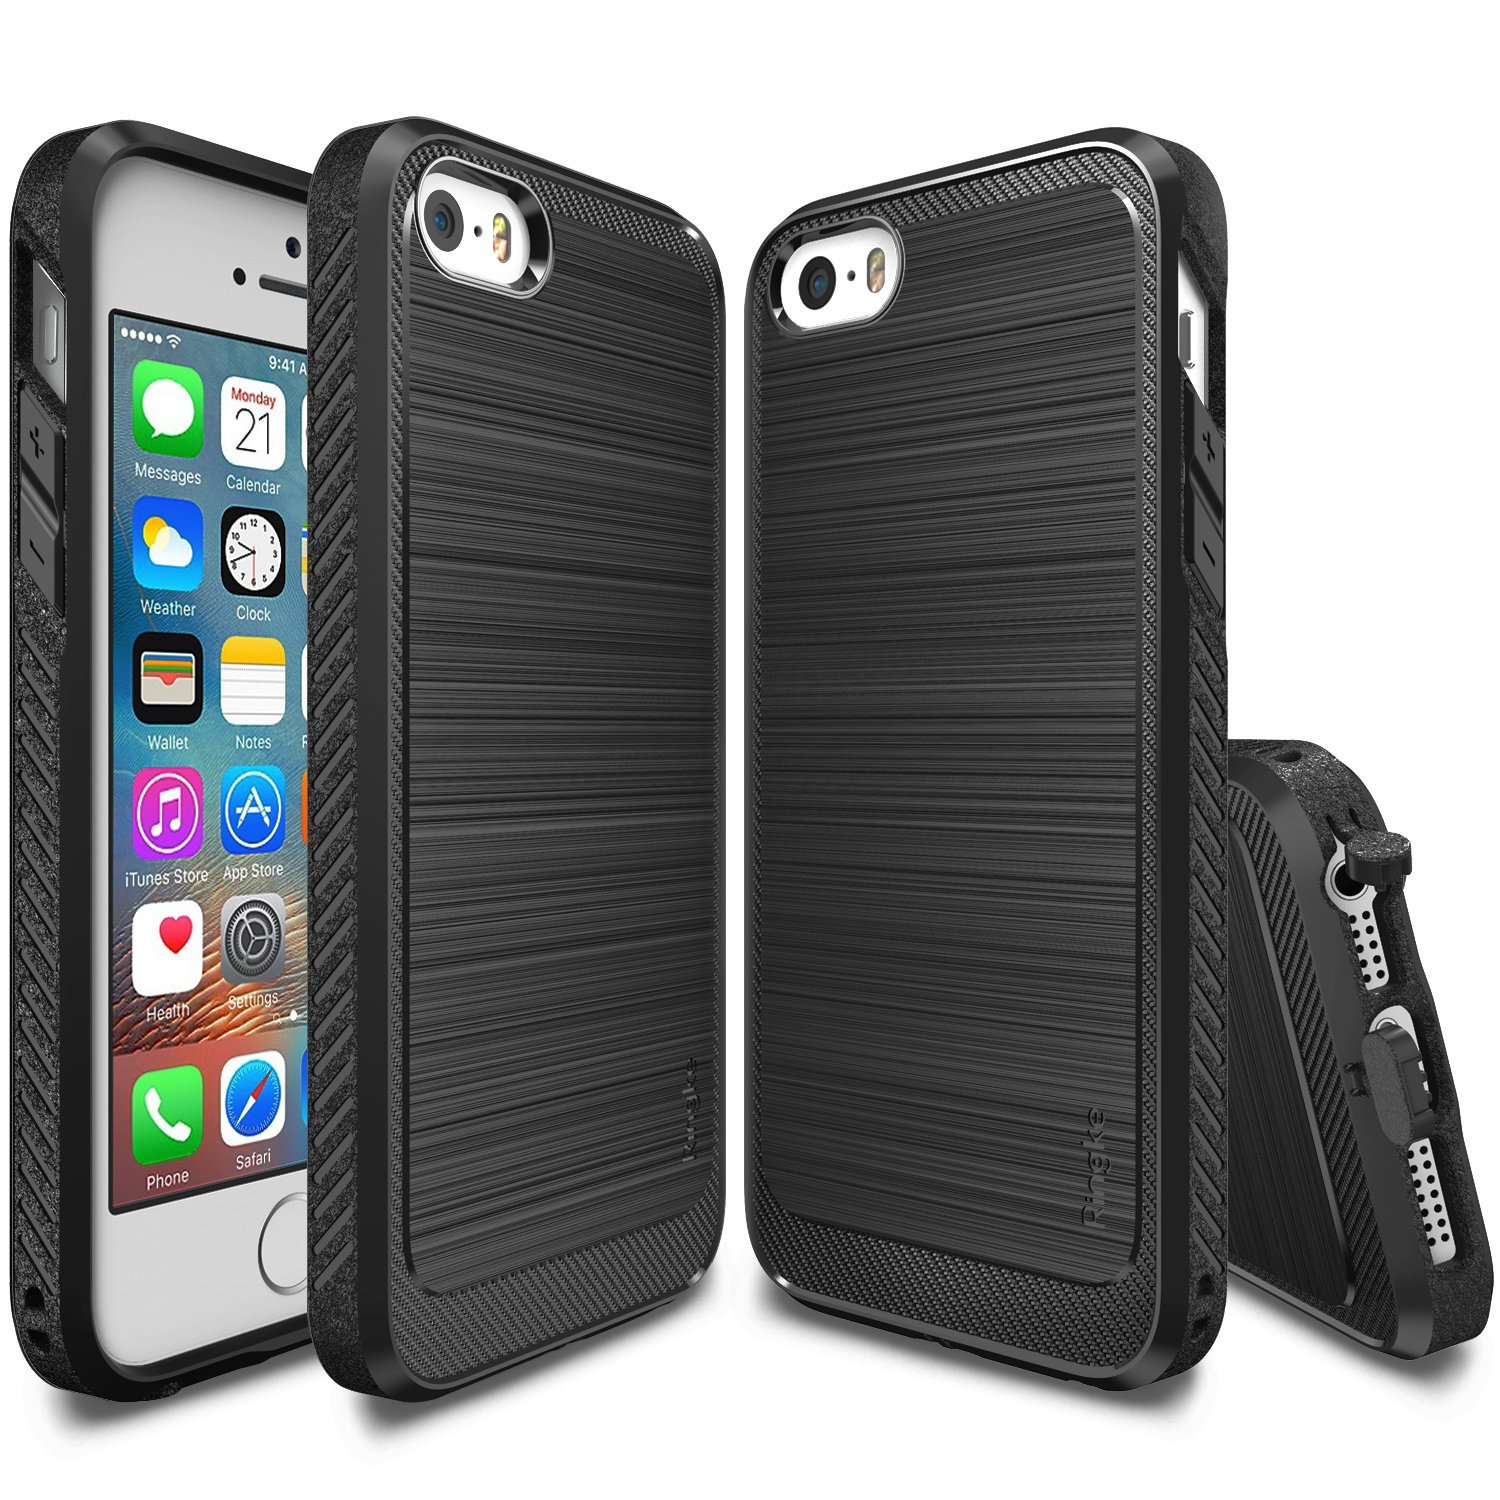 Ringke Onyx Soft Case for iPhone 5 / 5s / SE - Black - Casing,Cover